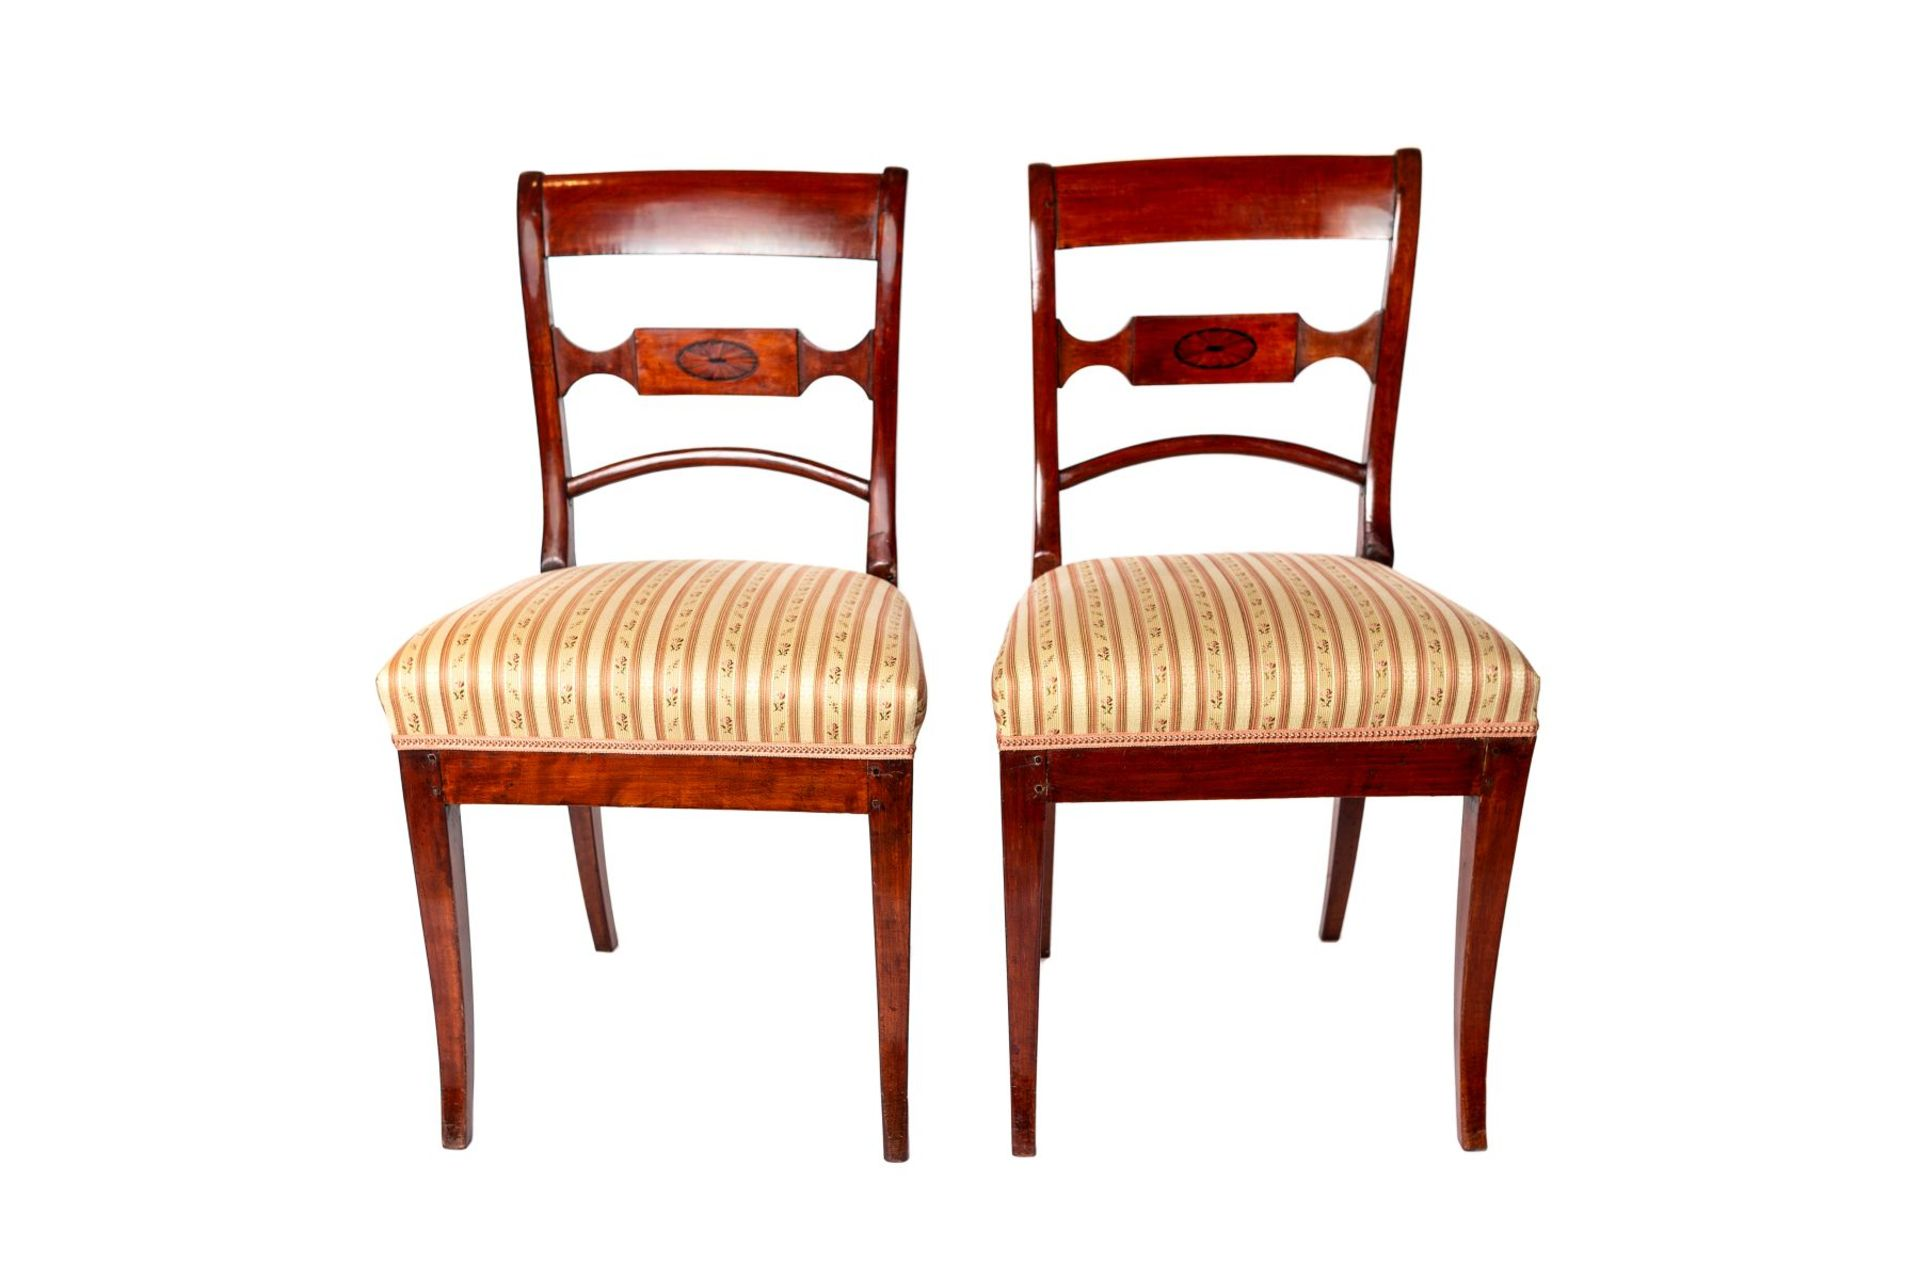 Two Biedermeier chairs